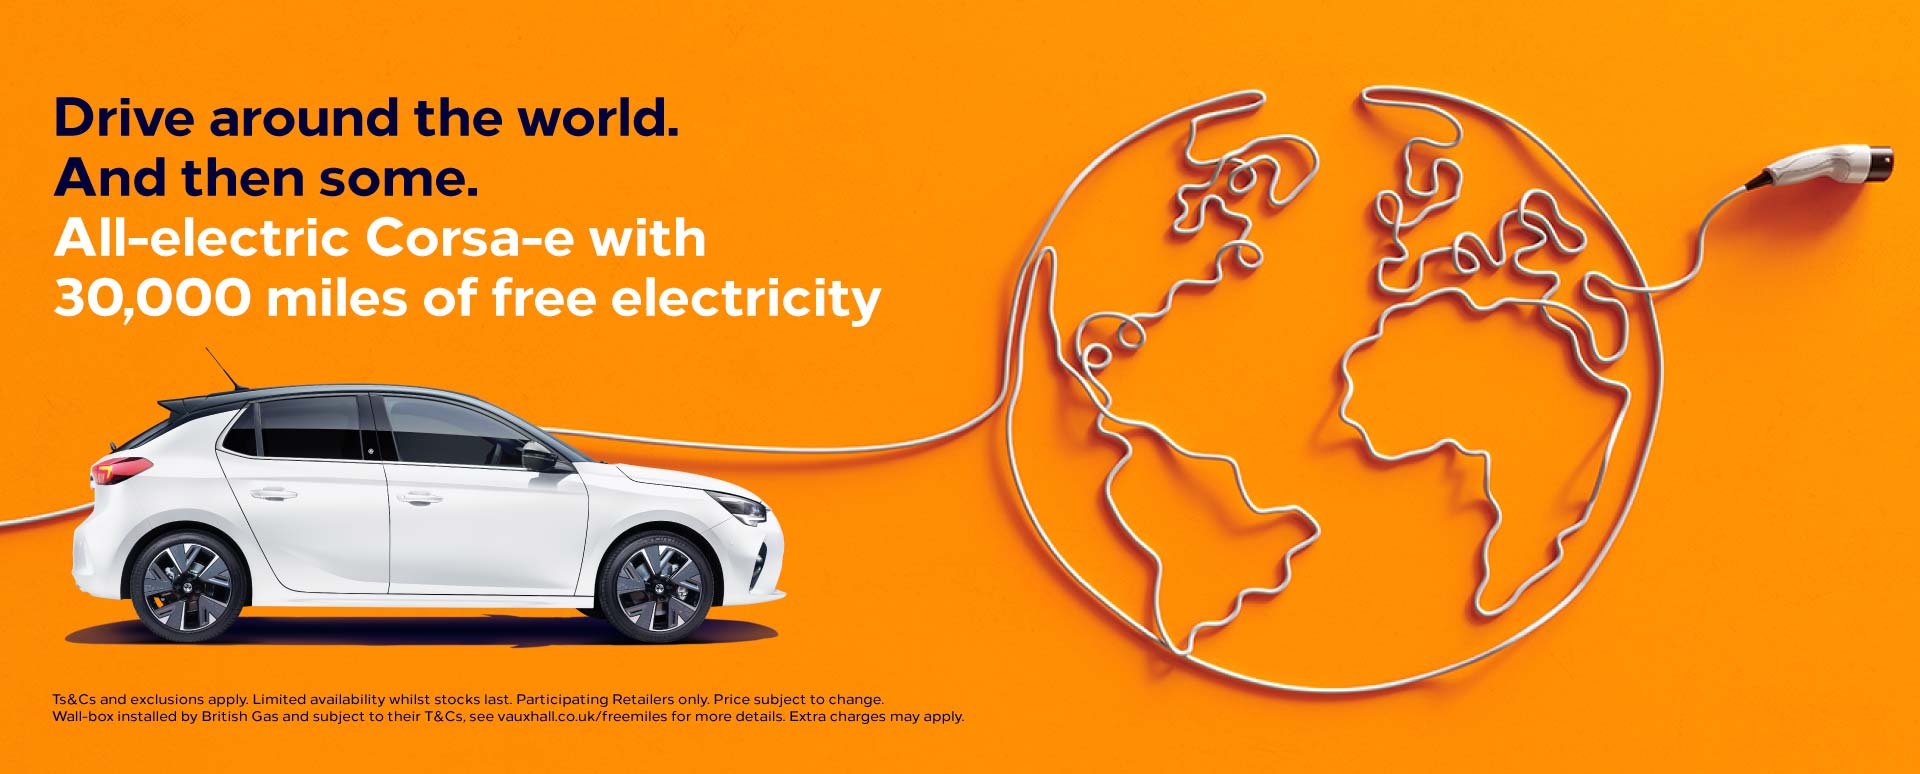 30,000 Miles of Free Electricity